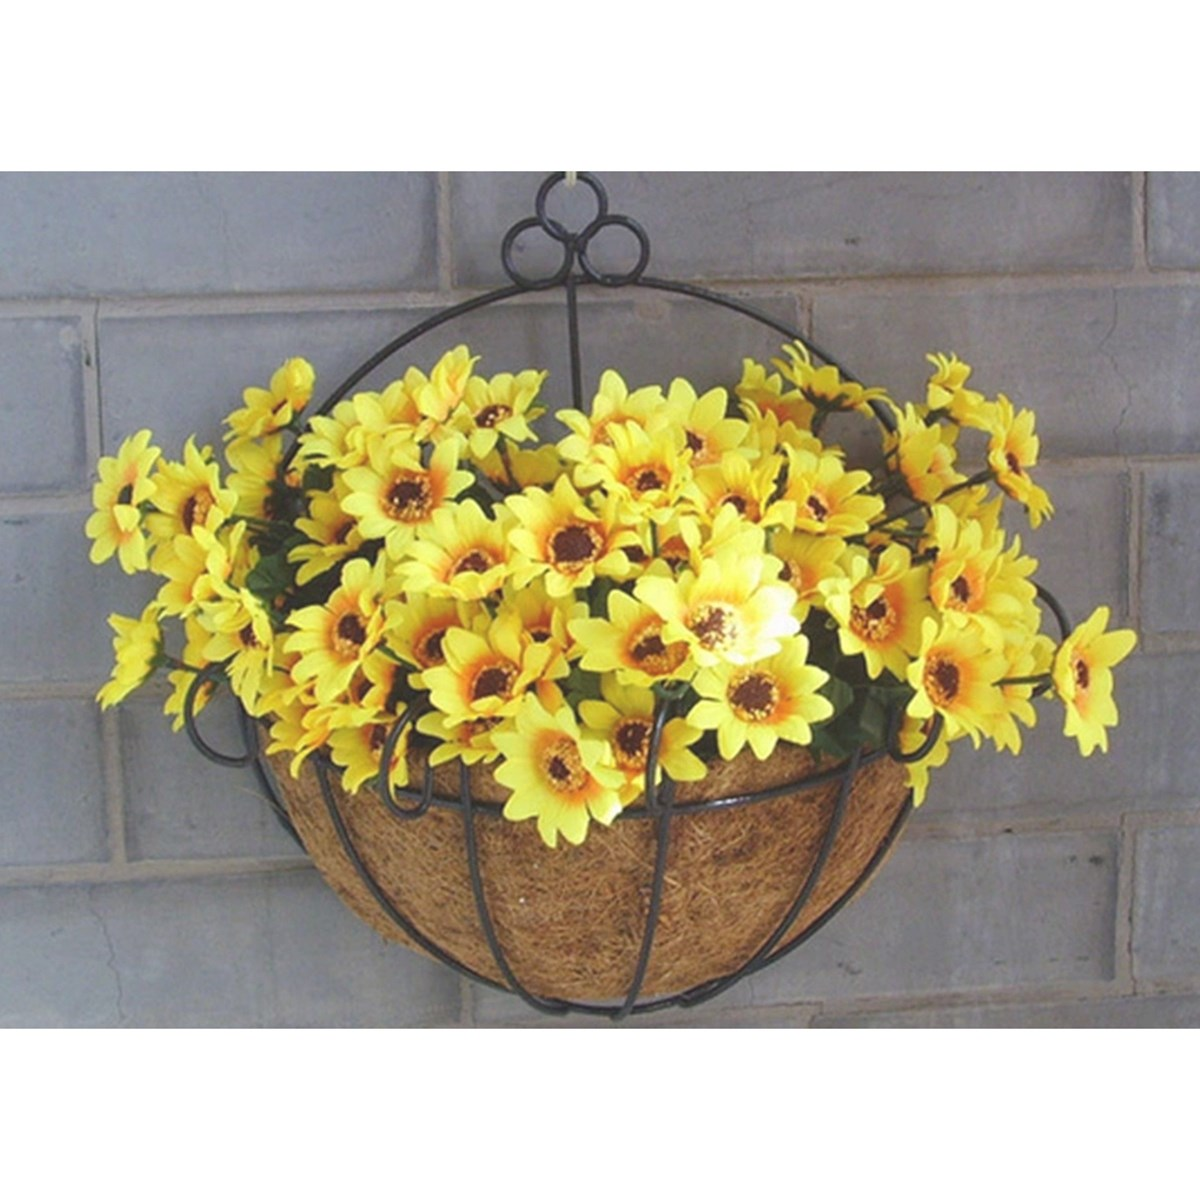 Garden Wall Hanging Flower Pot Basket Semicircular Windows IronCoir ...